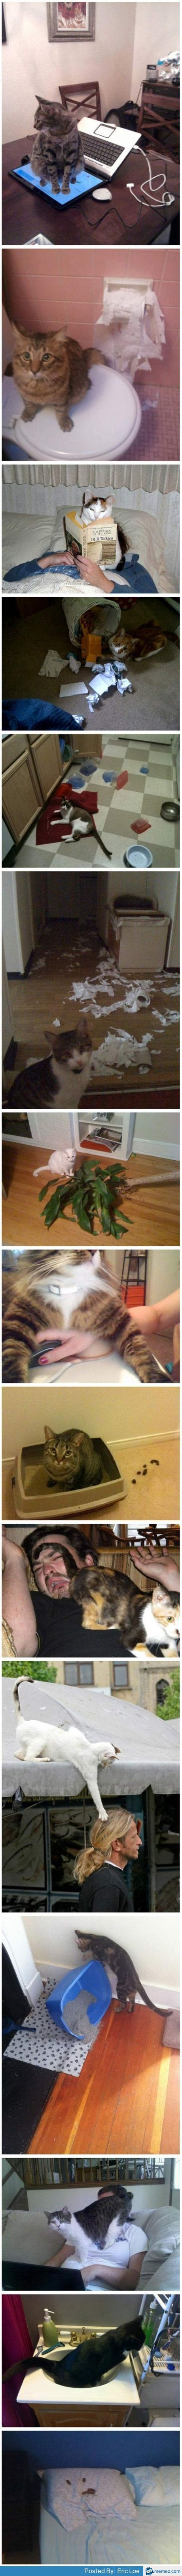 Because Cats do what they want